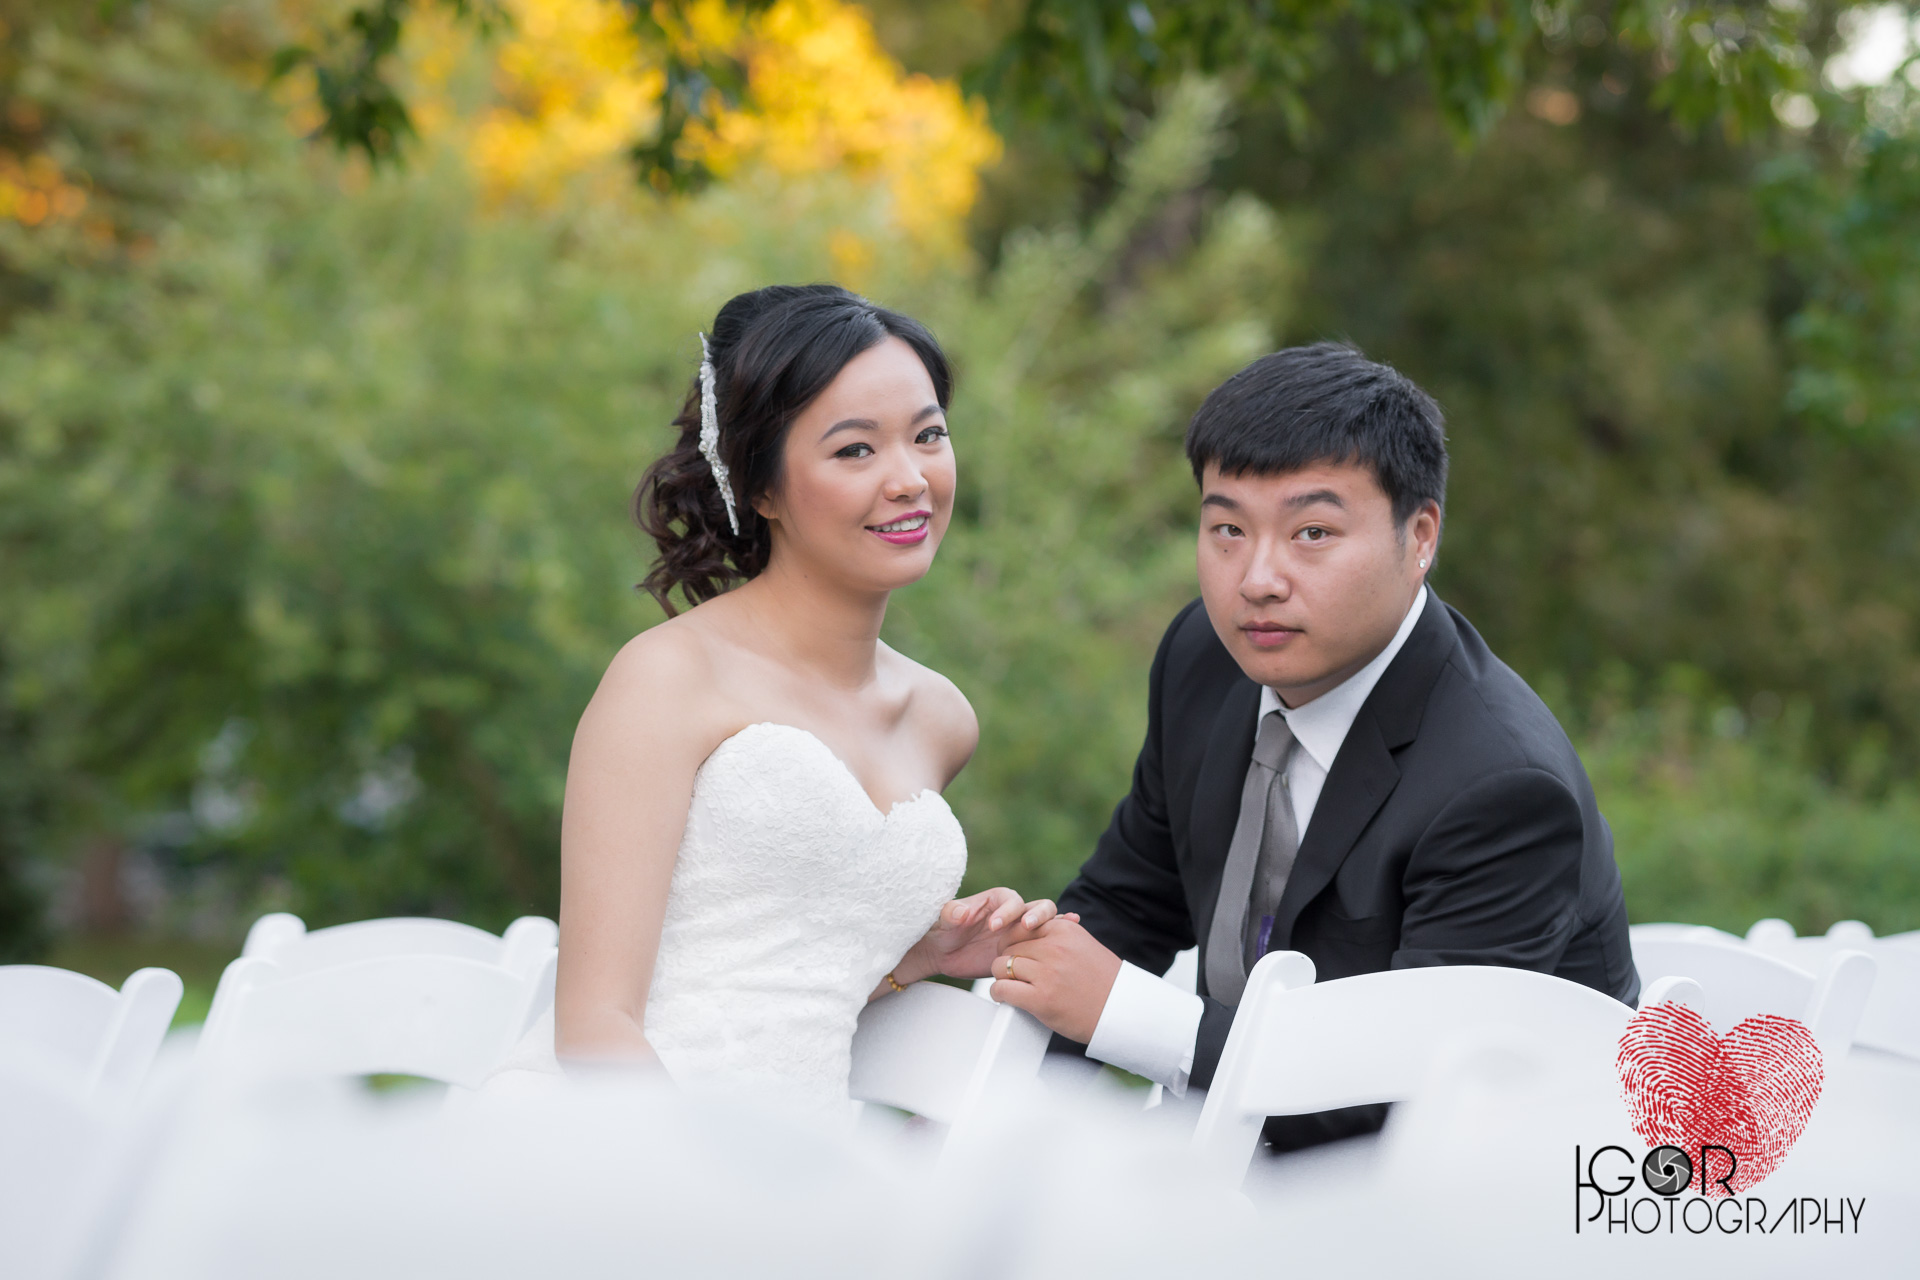 Fort Worth wedding photography at the Botanical Garden